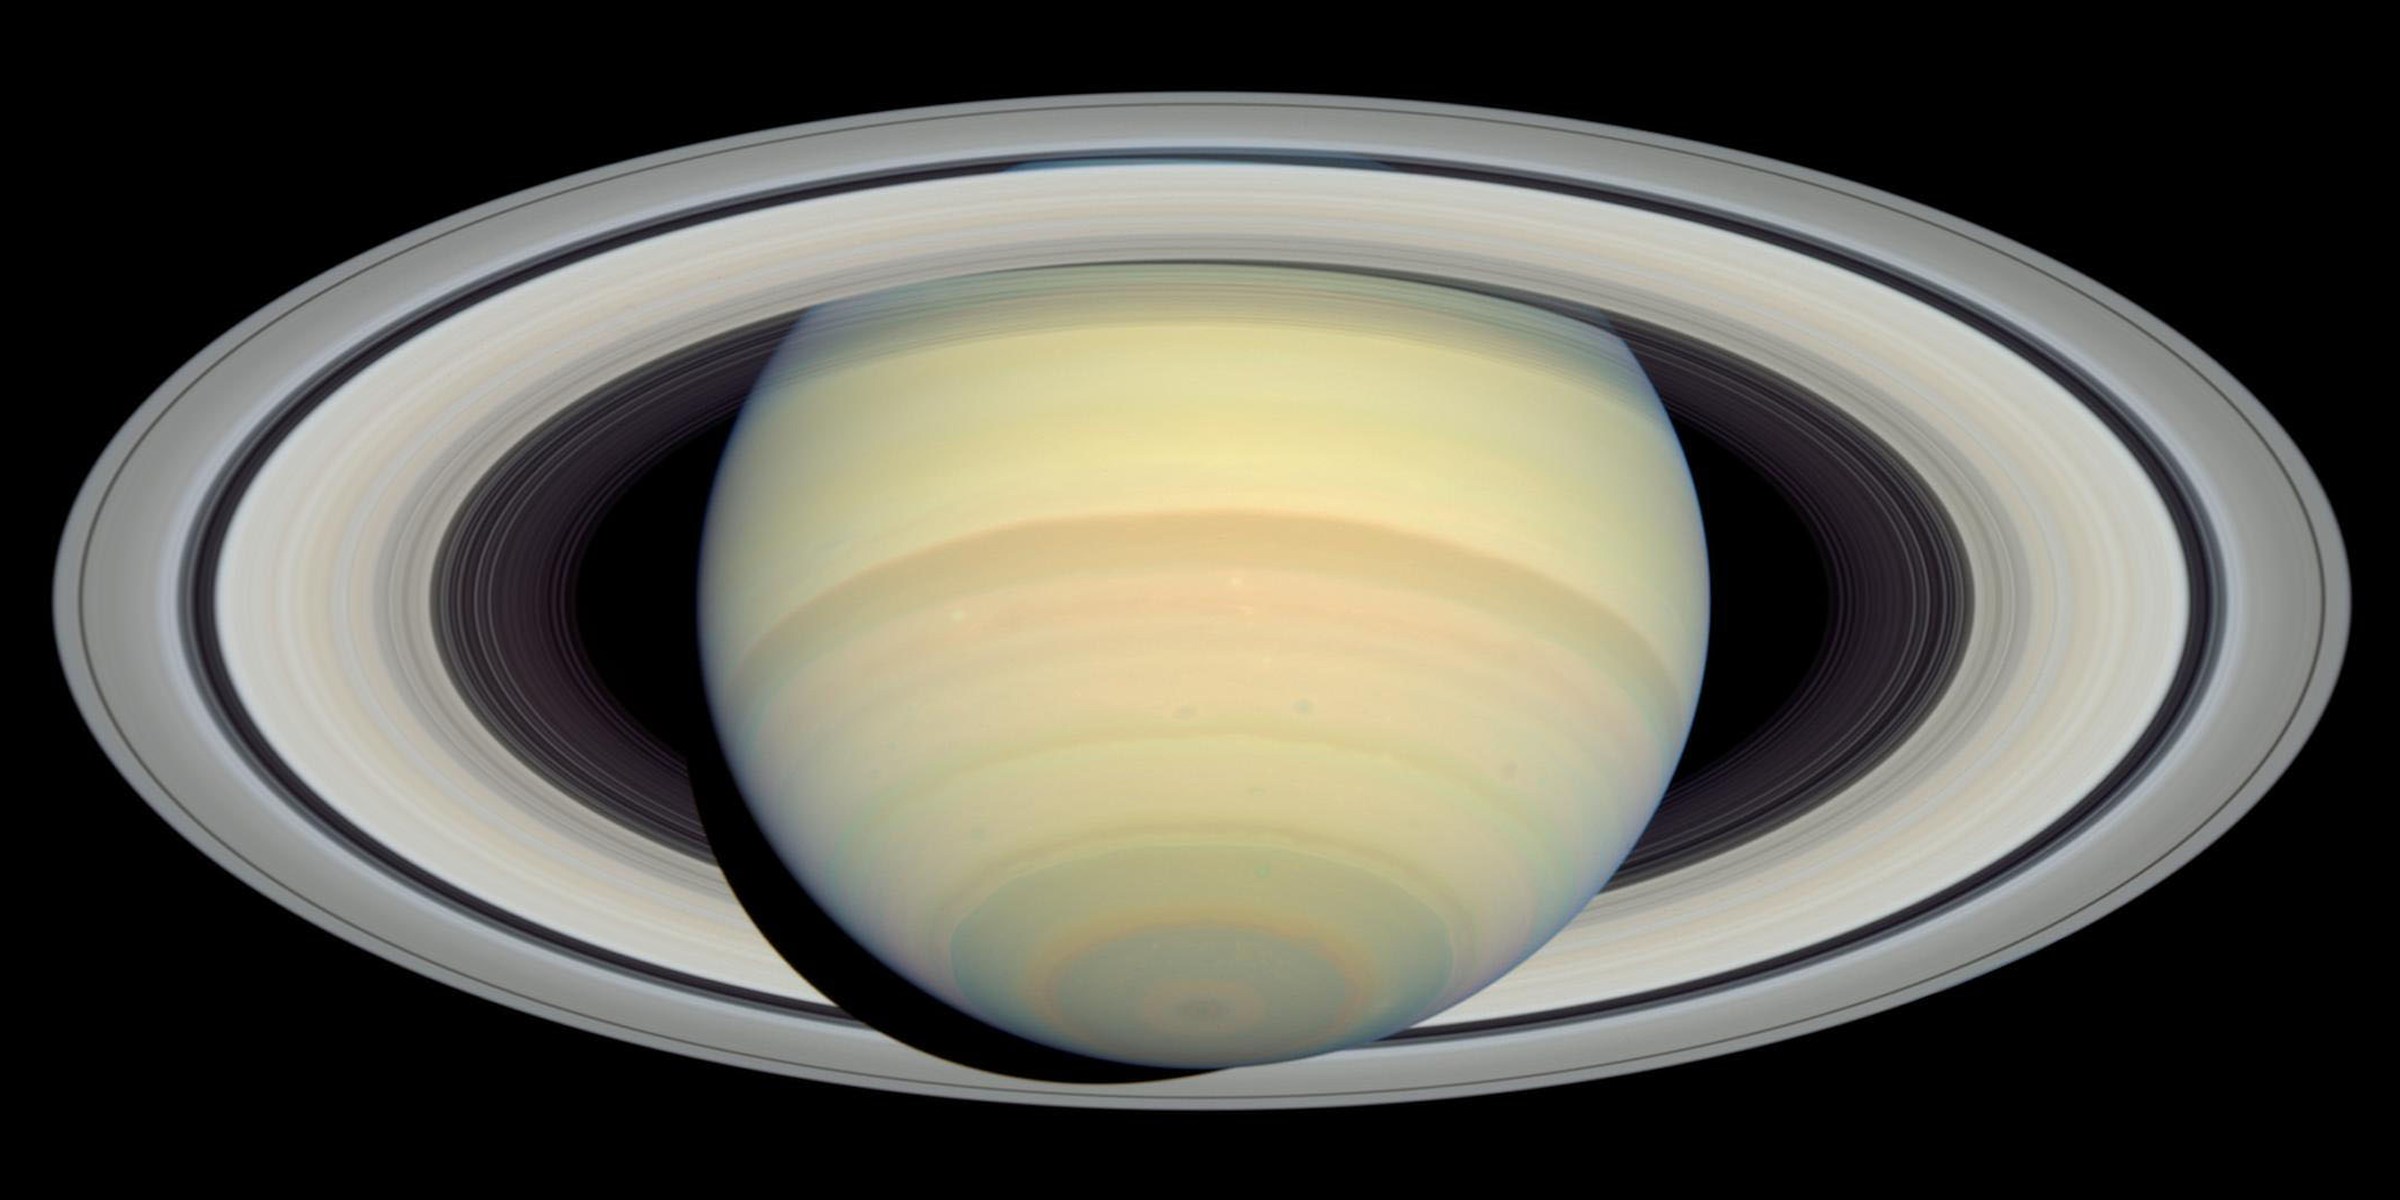 Hubble image of Saturn, March 22, 2004